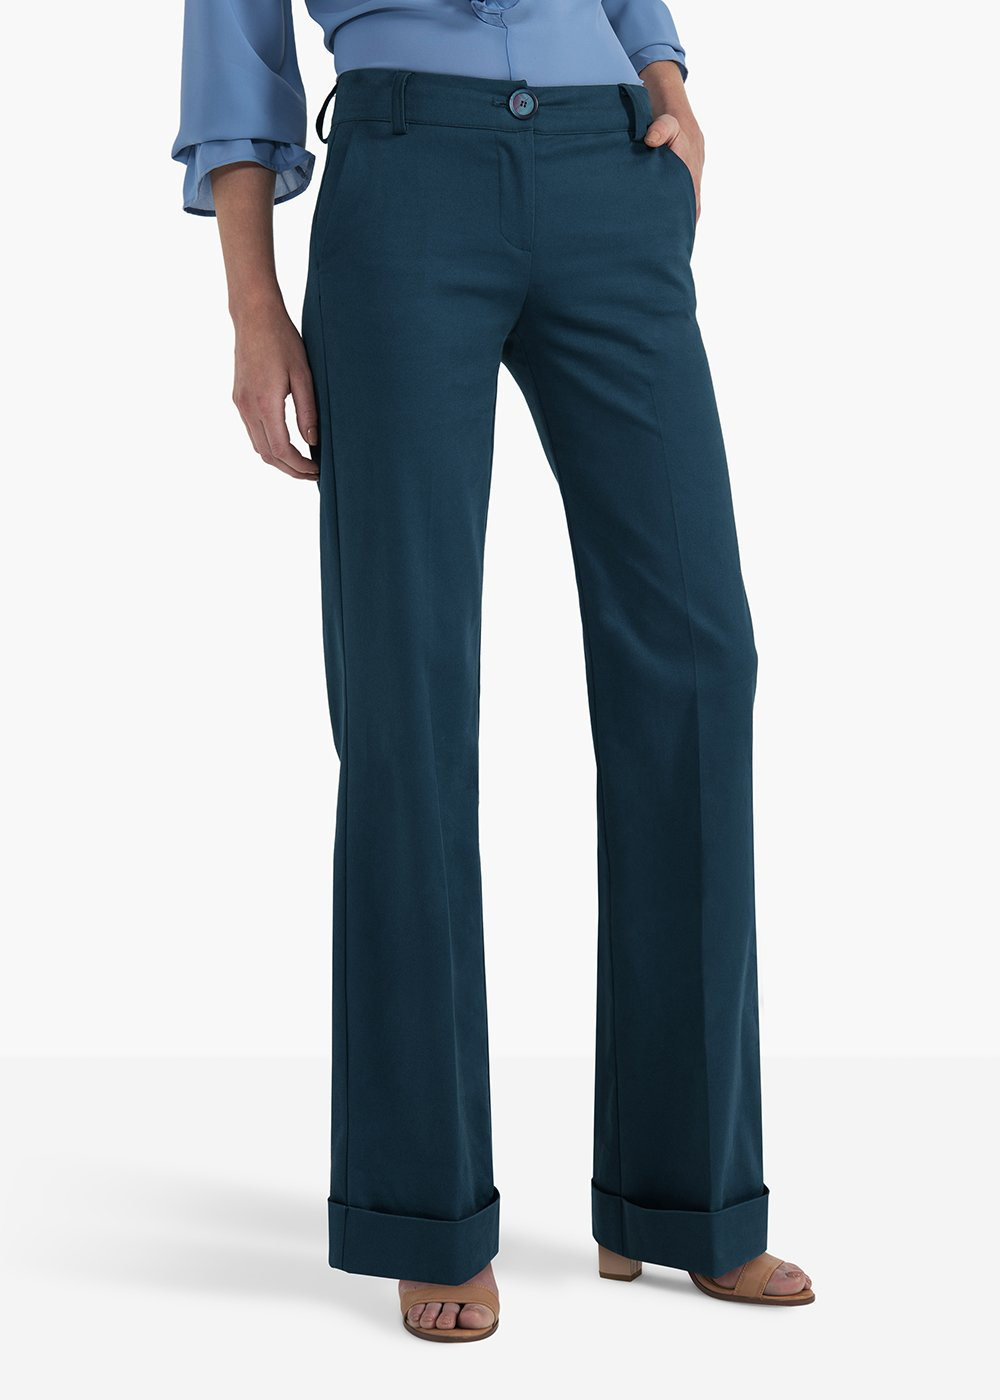 Pilad flared trousers with turn-up at the bottom - Blue - Woman